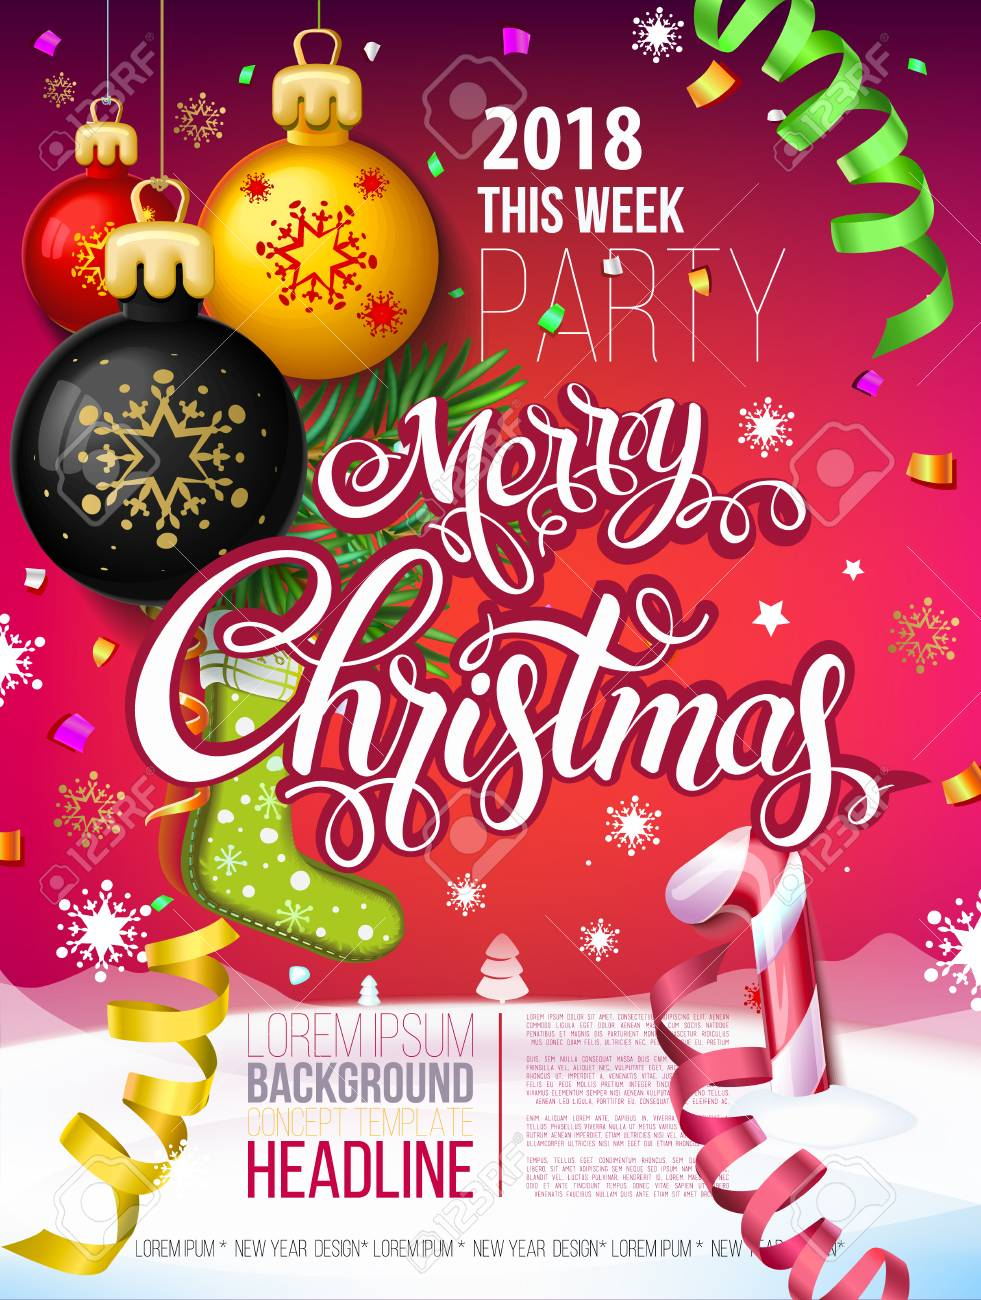 Merry Christmas Poster 2018.Merry Christmas 2018 Decoration Poster Card And Happy New Year